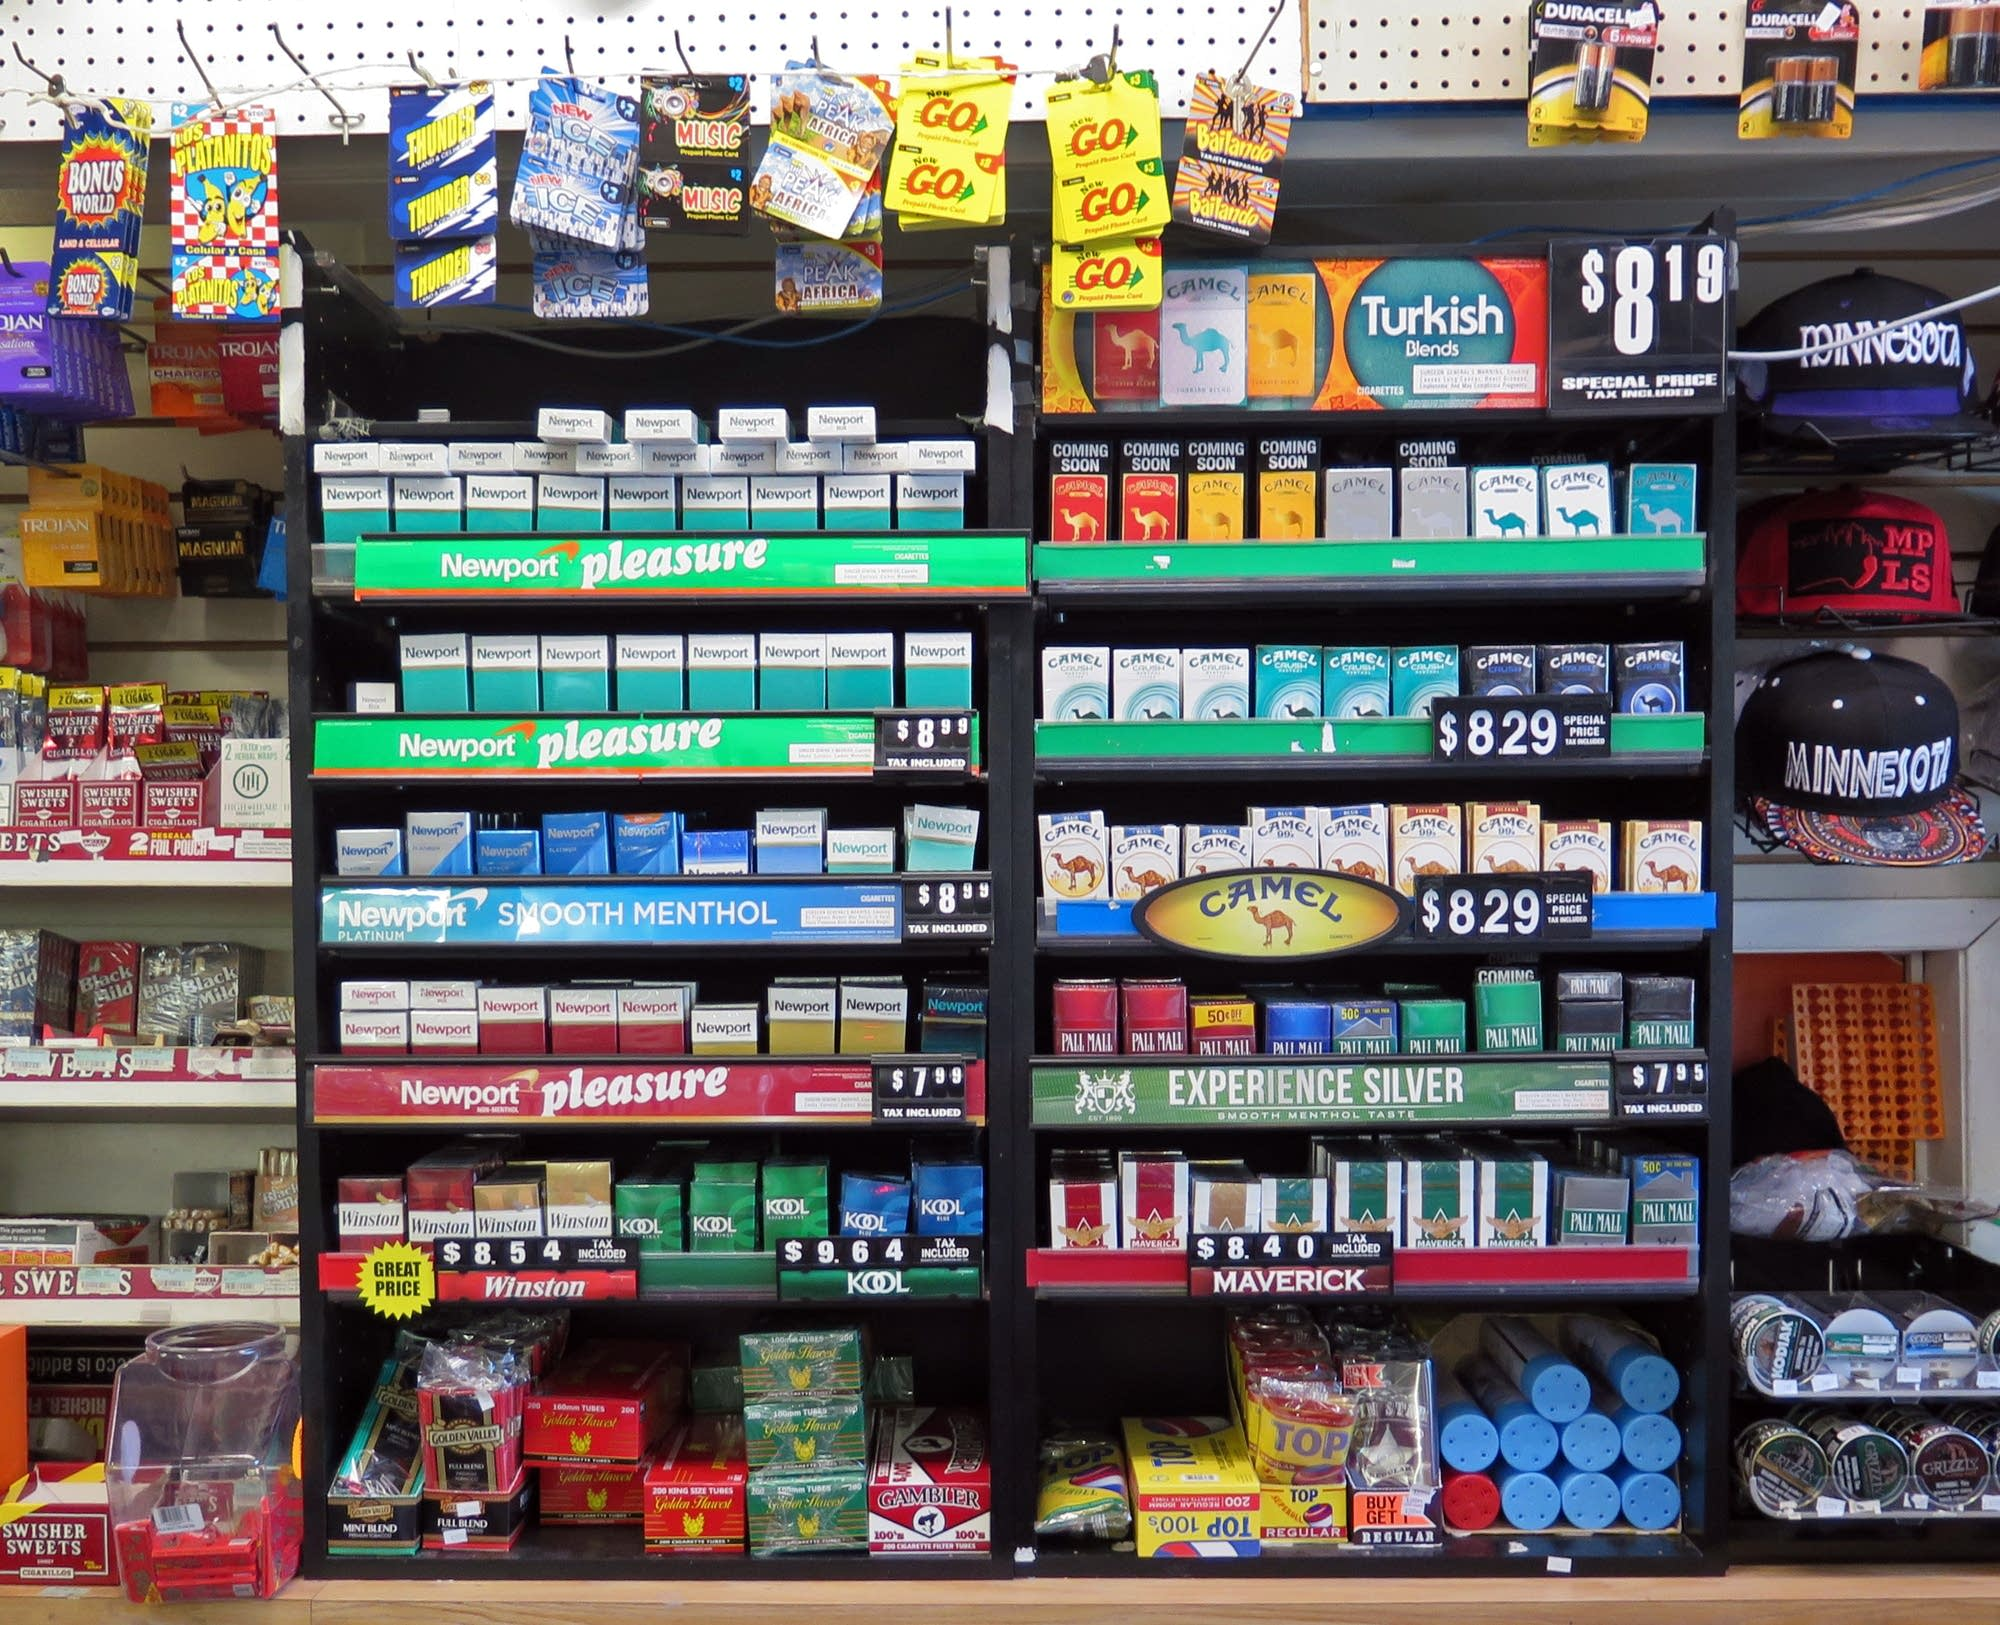 Some of the many menthol tobacco products sold at the Penwood Market.